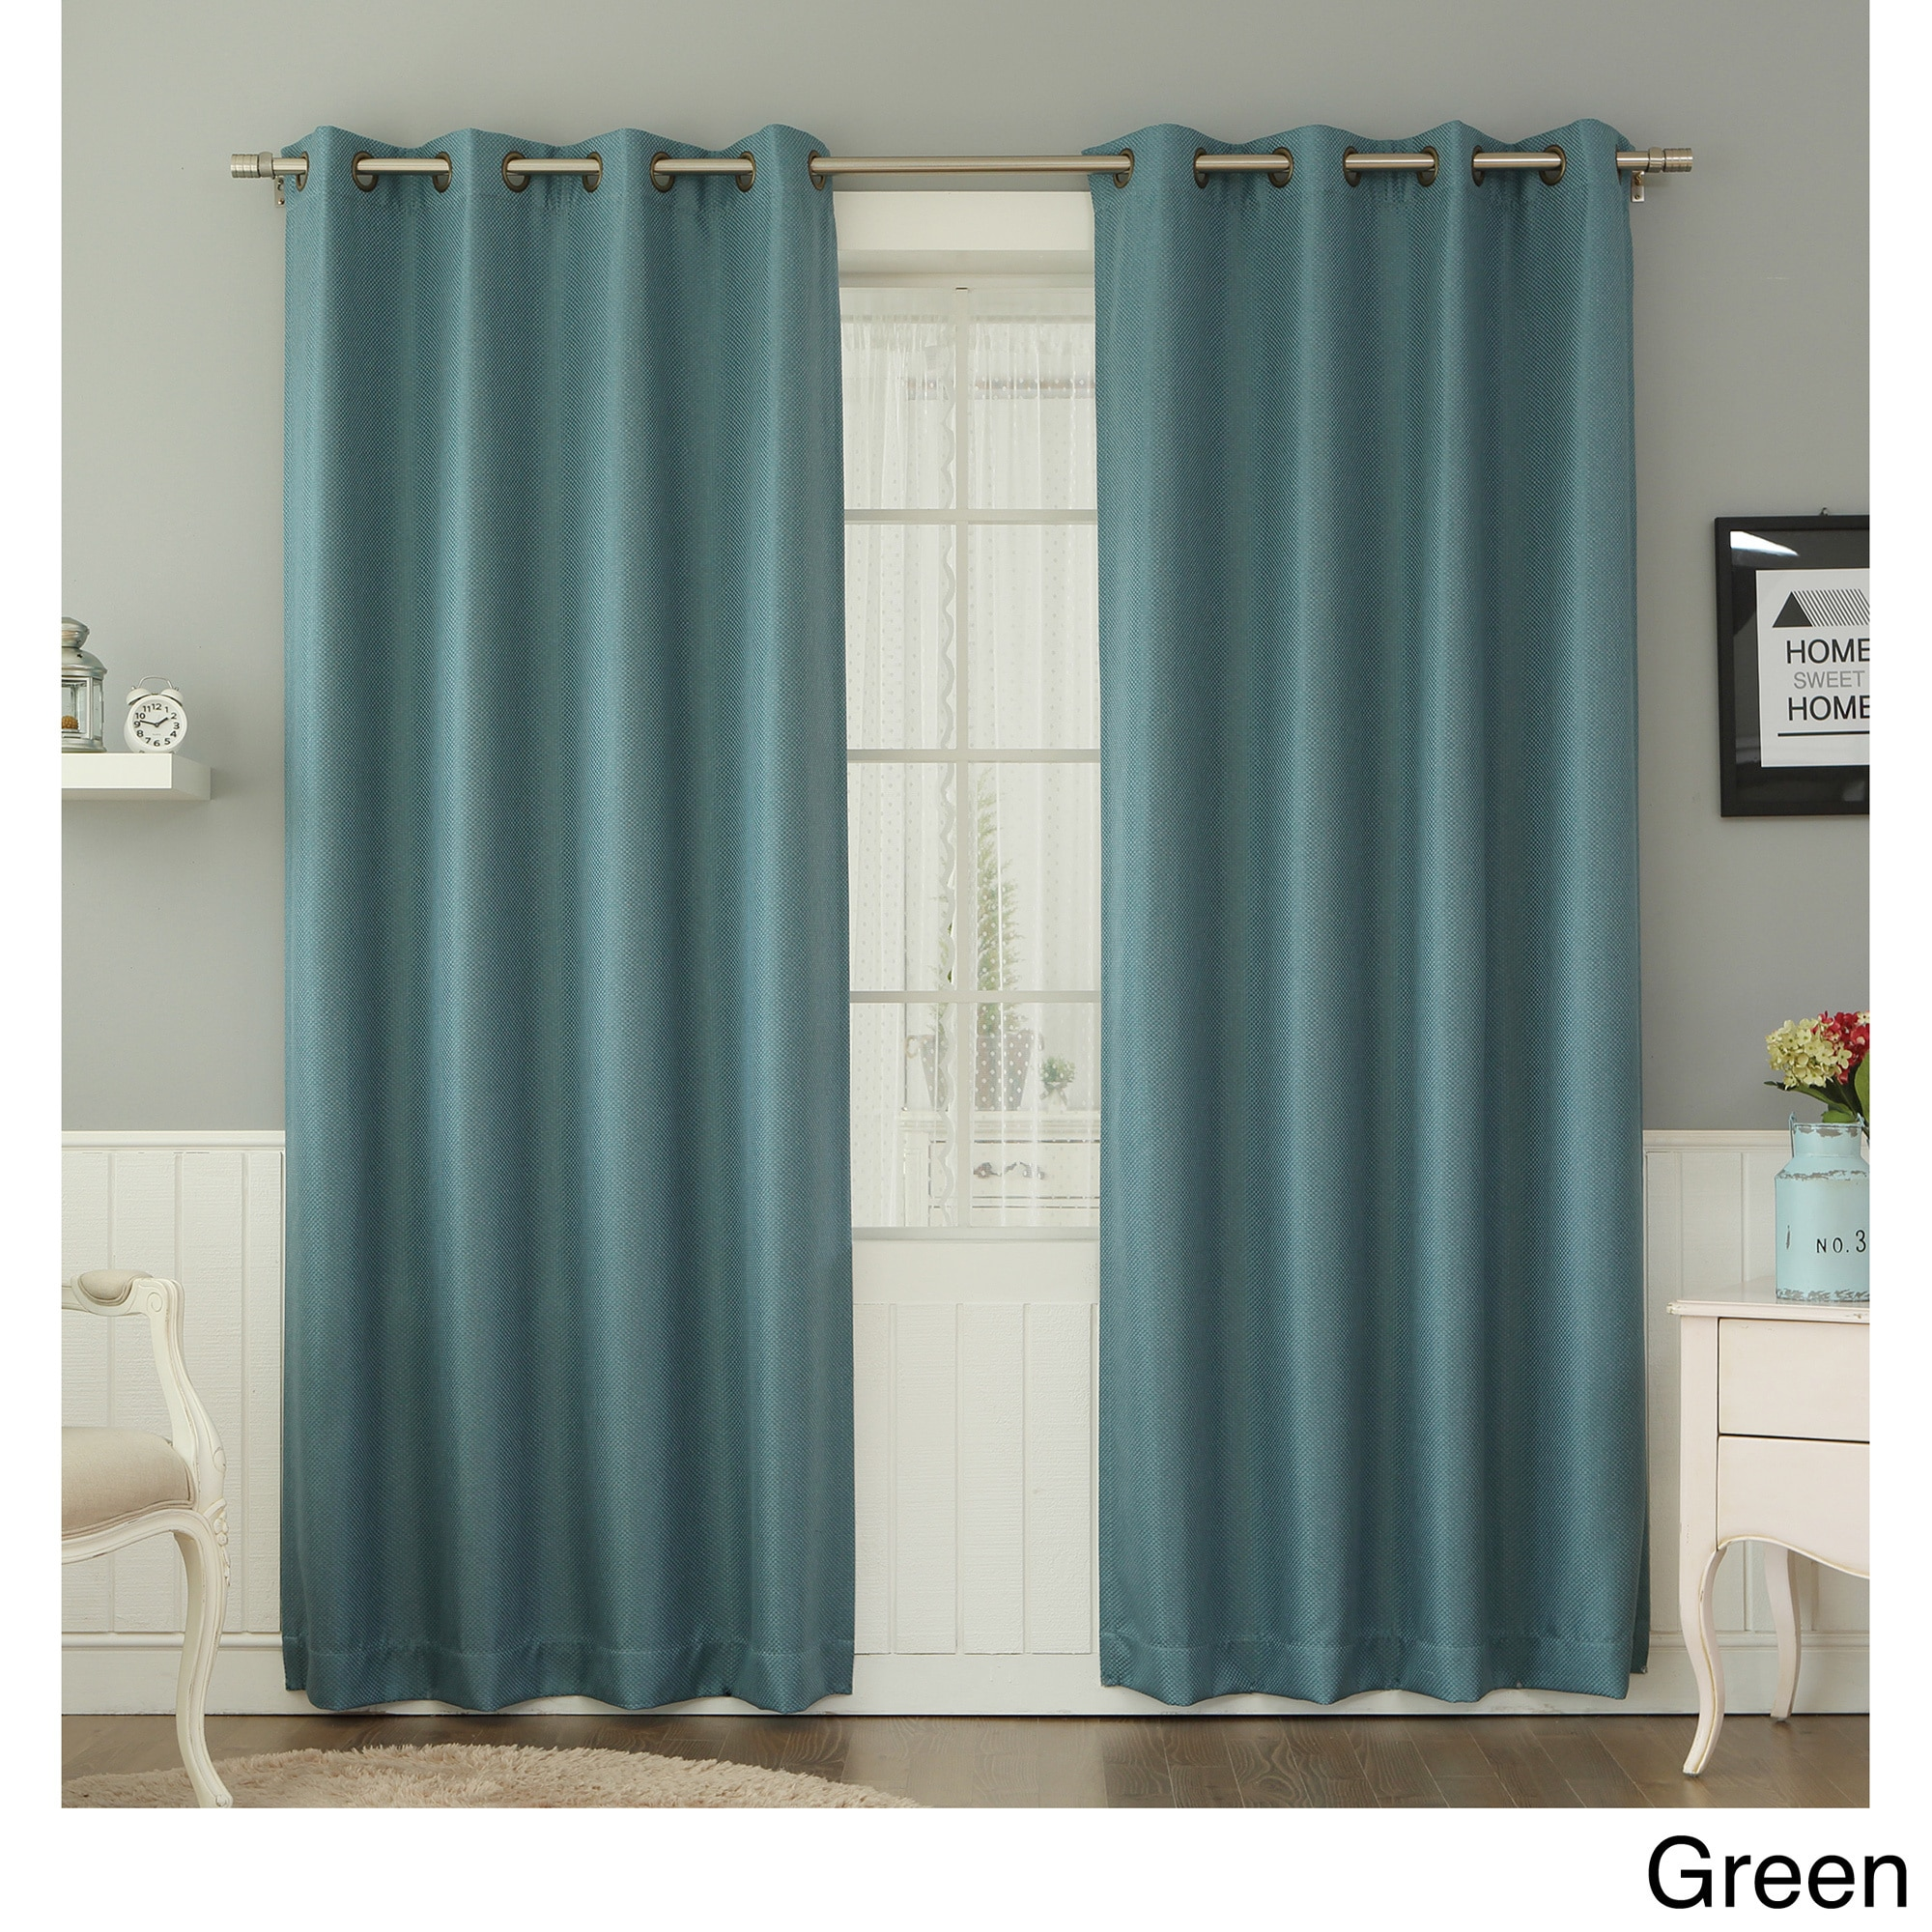 Aurora Home  Basketweave Linen Look Room Darkening Blackout Grommet Curtain Panel Pair